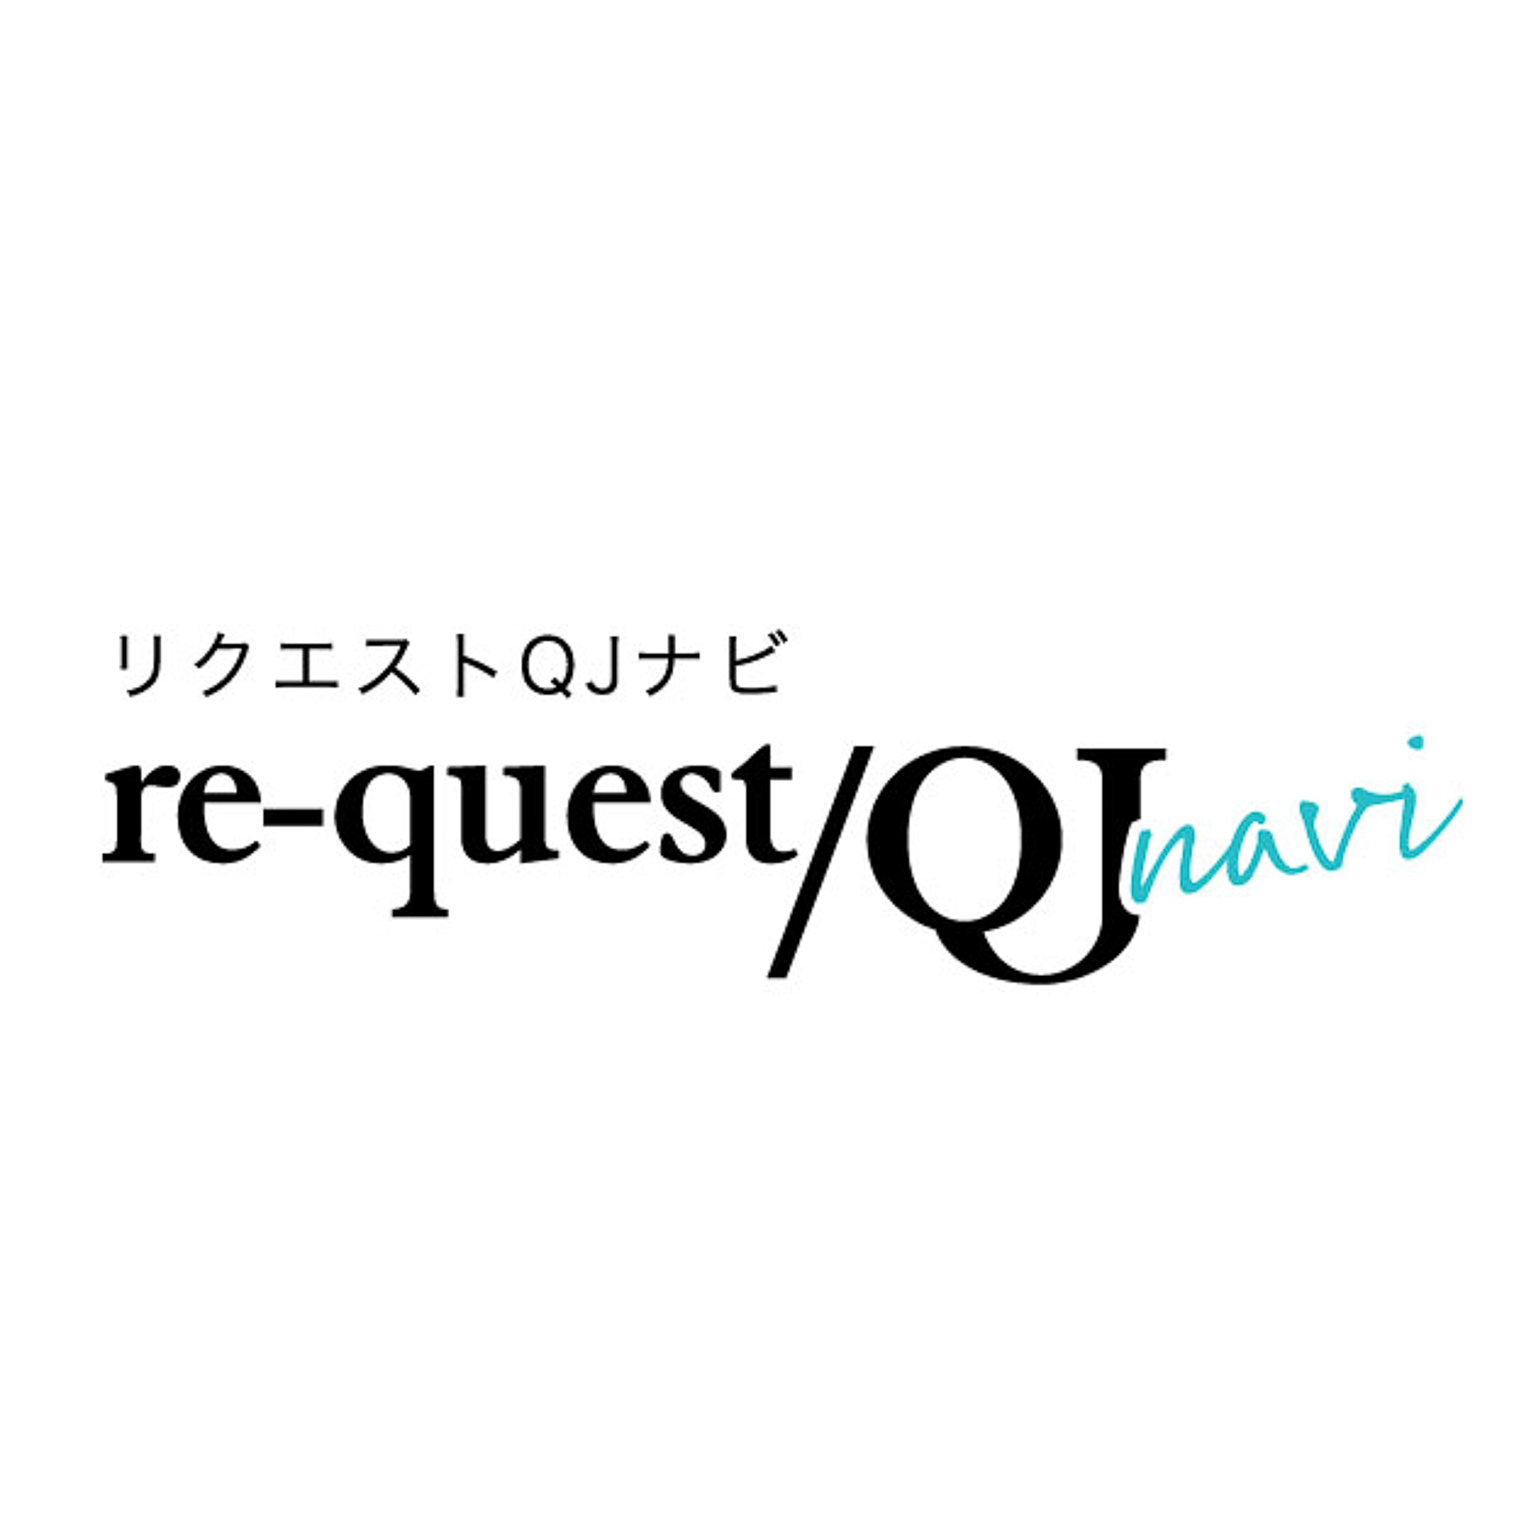 request/QJ Navi dailyへのリンク